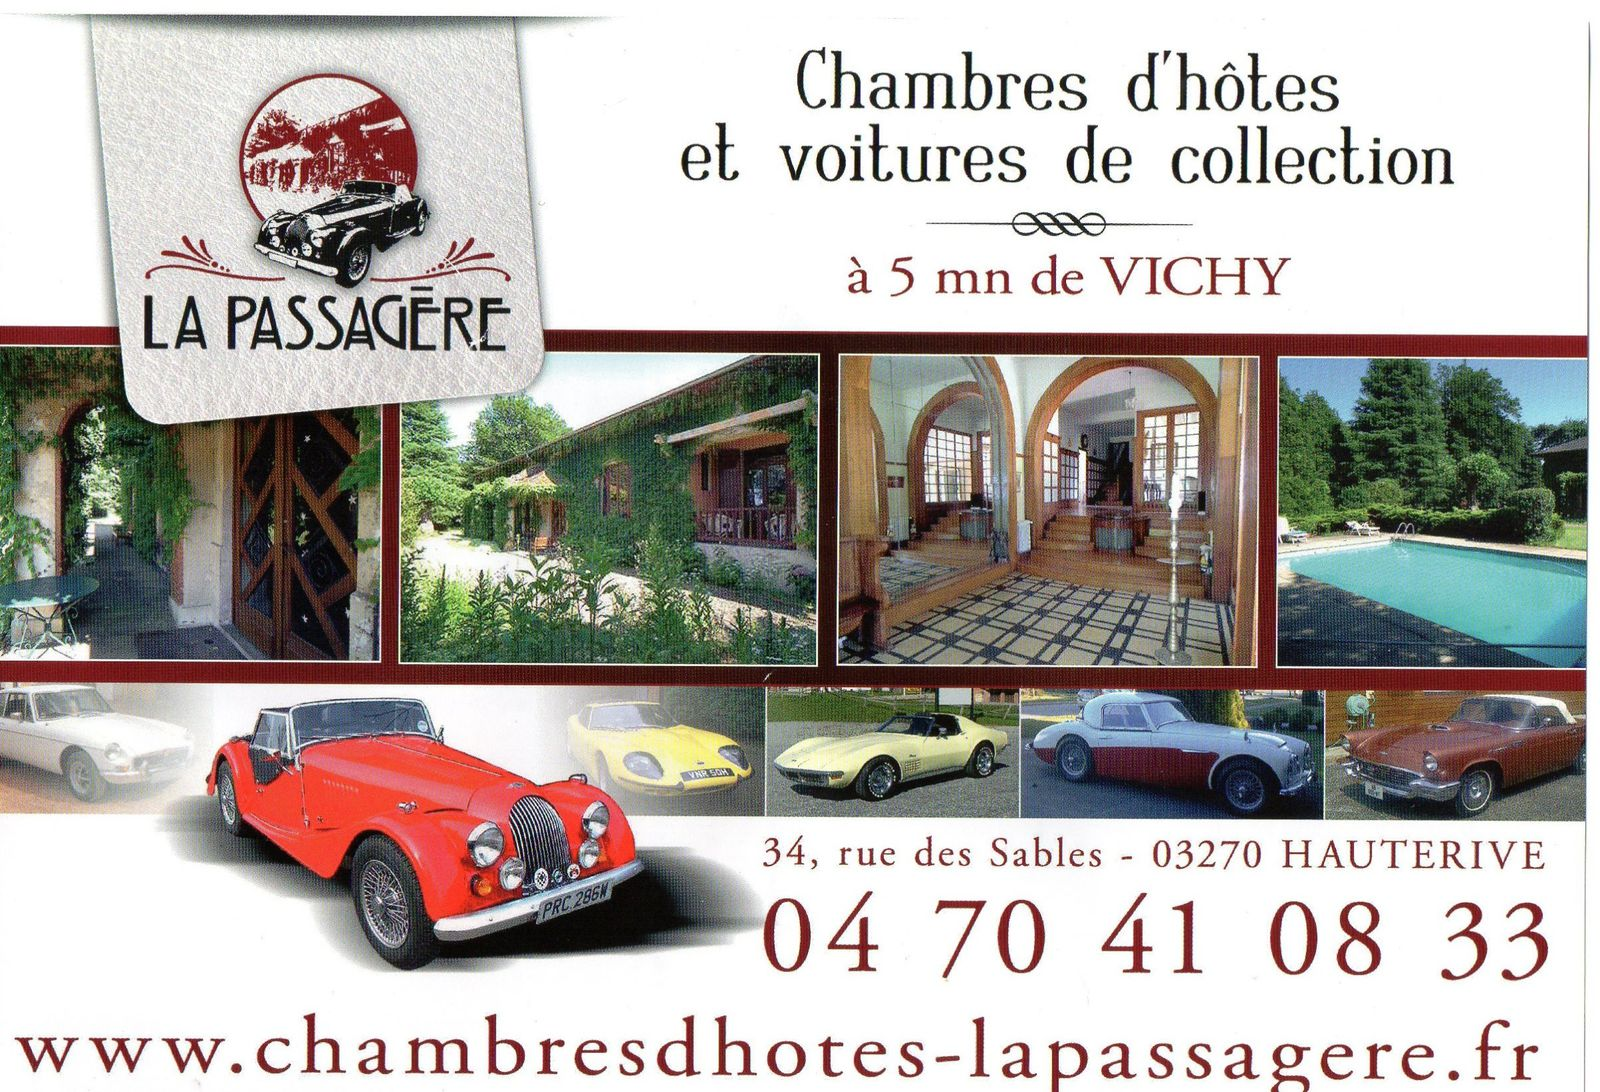 WWW.CHAMBRESDHOTES-LAPASSAGERE.FR